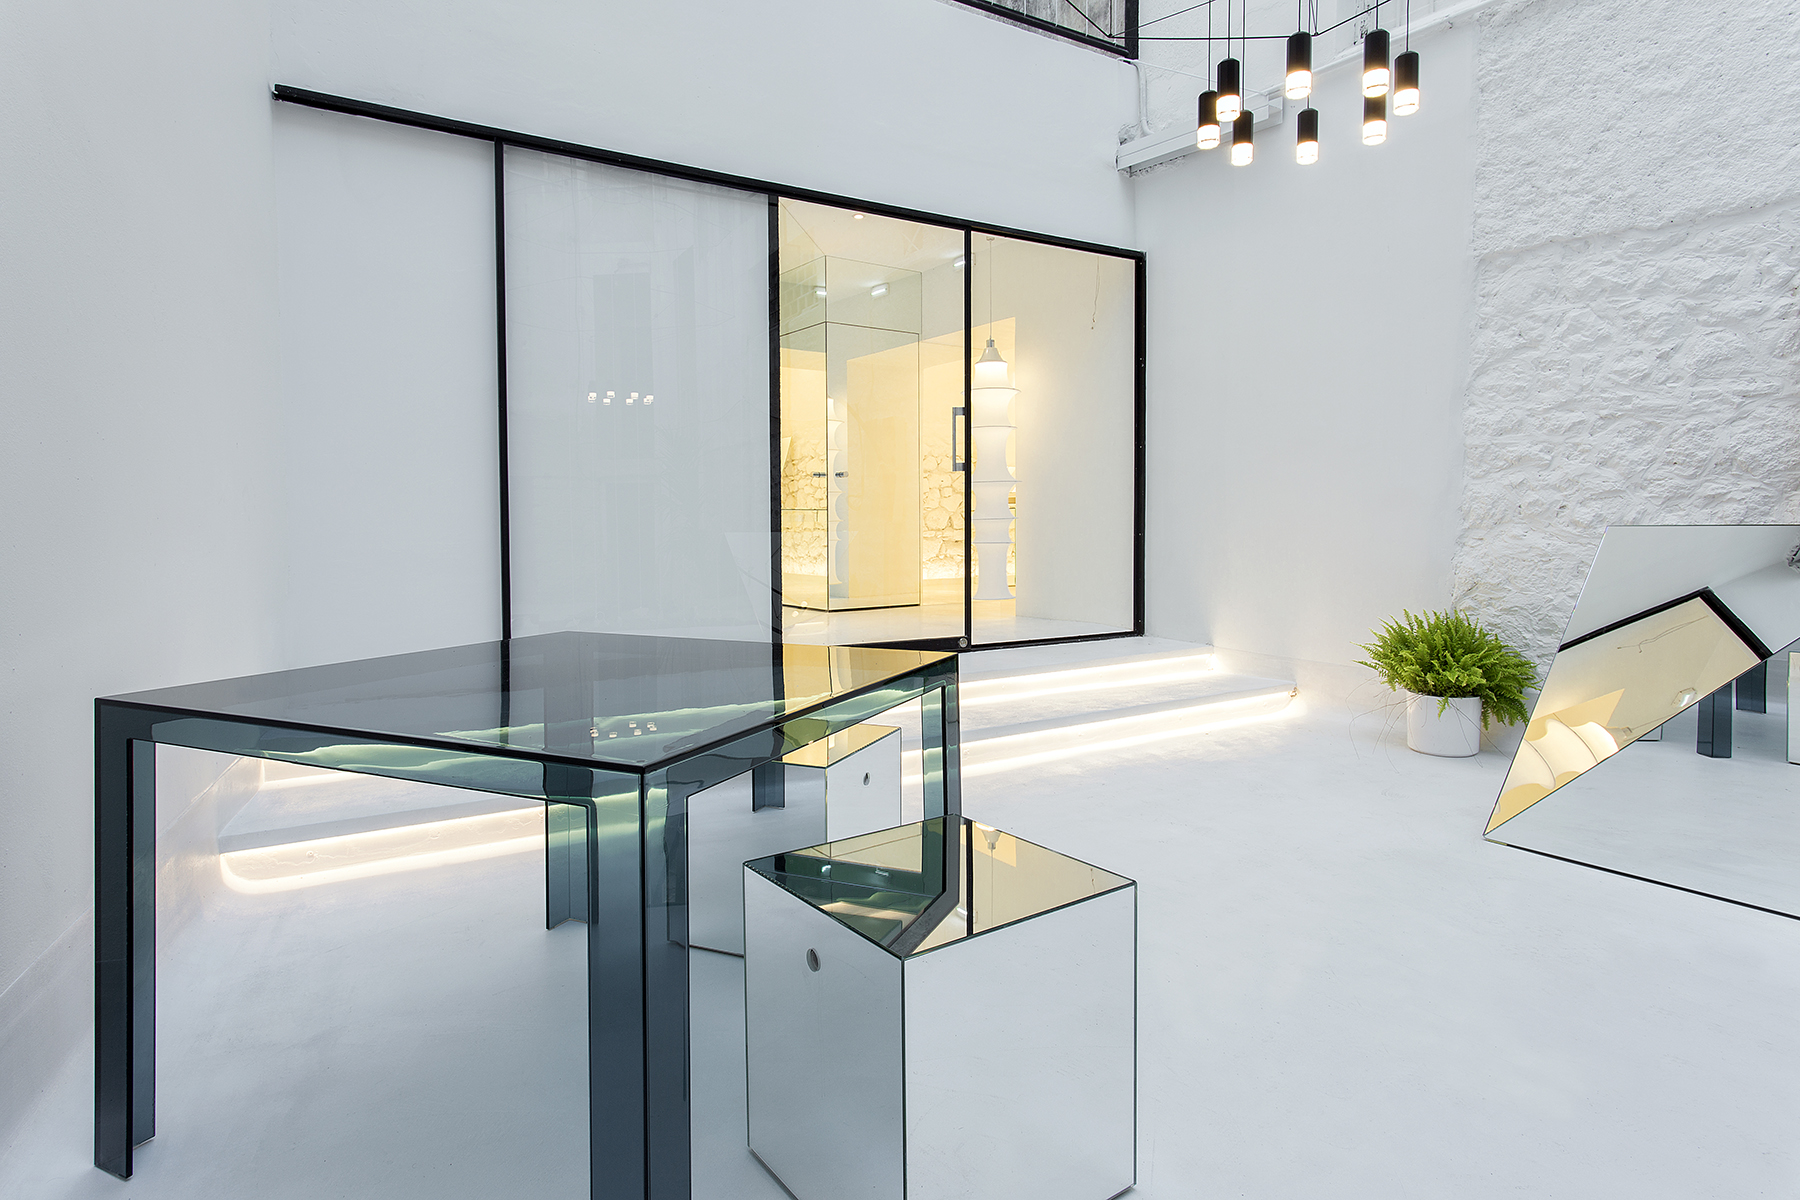 314_Architecture_Studio-glasses_store-hisheji (3)